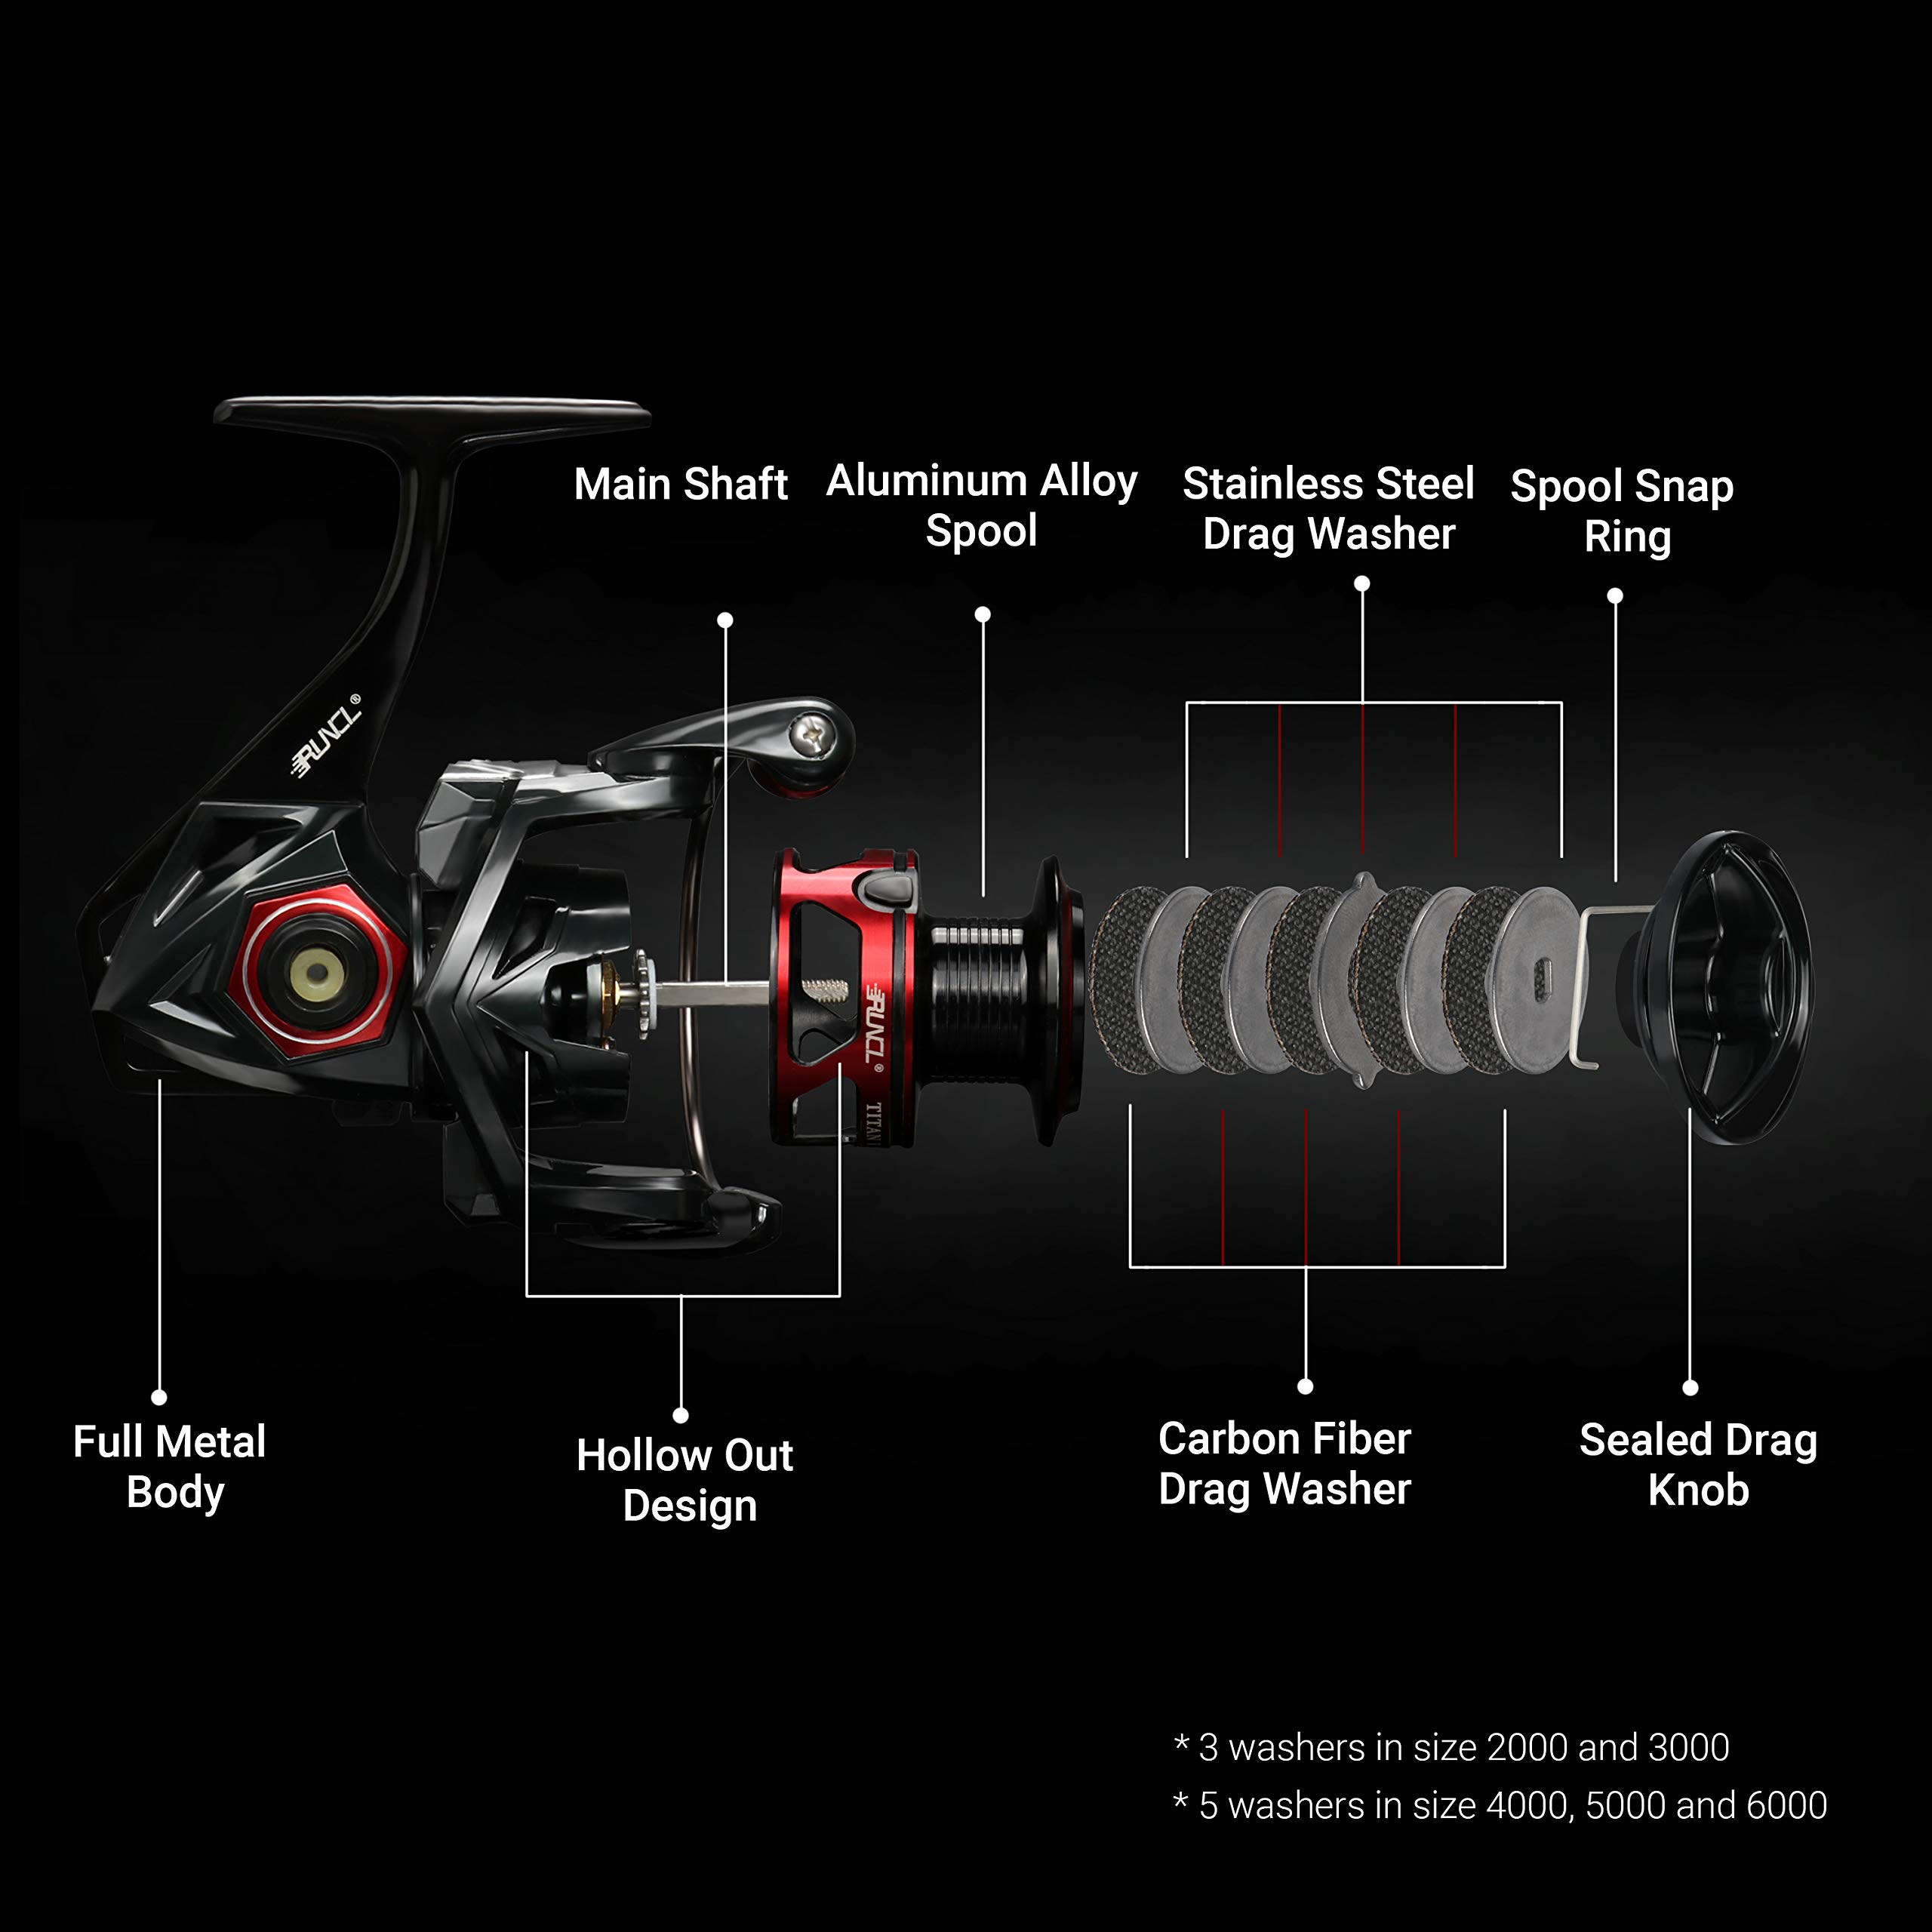 RUNCL Spinning Reel Titan I, Fishing Reel with Full Metal Body, Max Drag 44LB, 5 Carbon Fiber Drag Washers, 9+1 Stainless Steel Shielded Bearings, Hollow Out Rotor for Saltwater and Freshwater (4000) by RUNCL (Image #3)